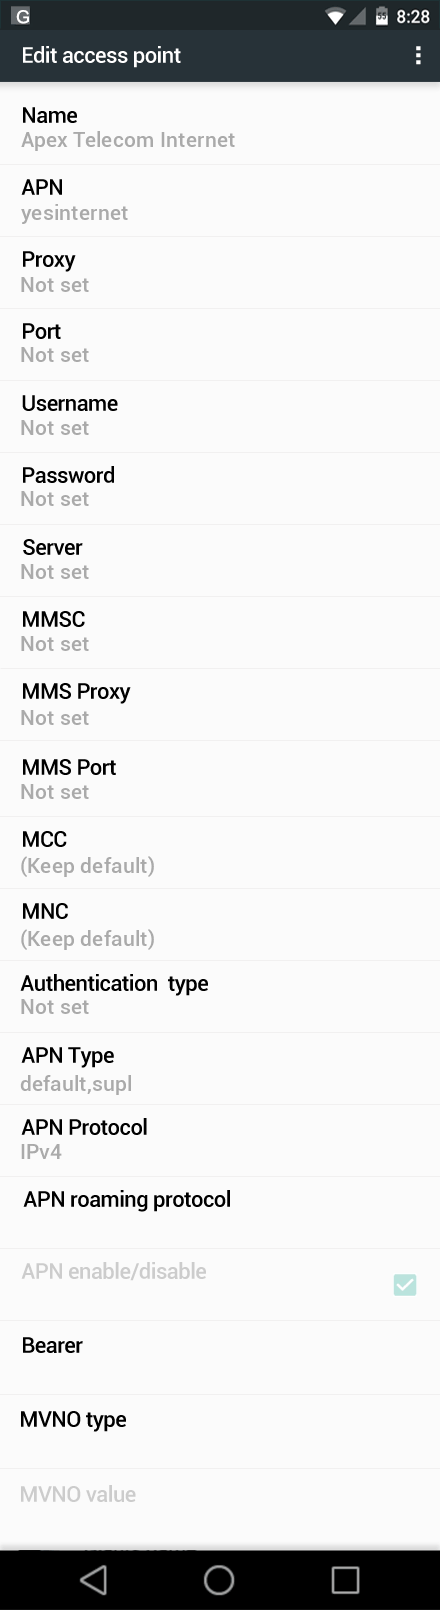 Apex Telecom Internet APN settings for Android Marshmallow screenshot